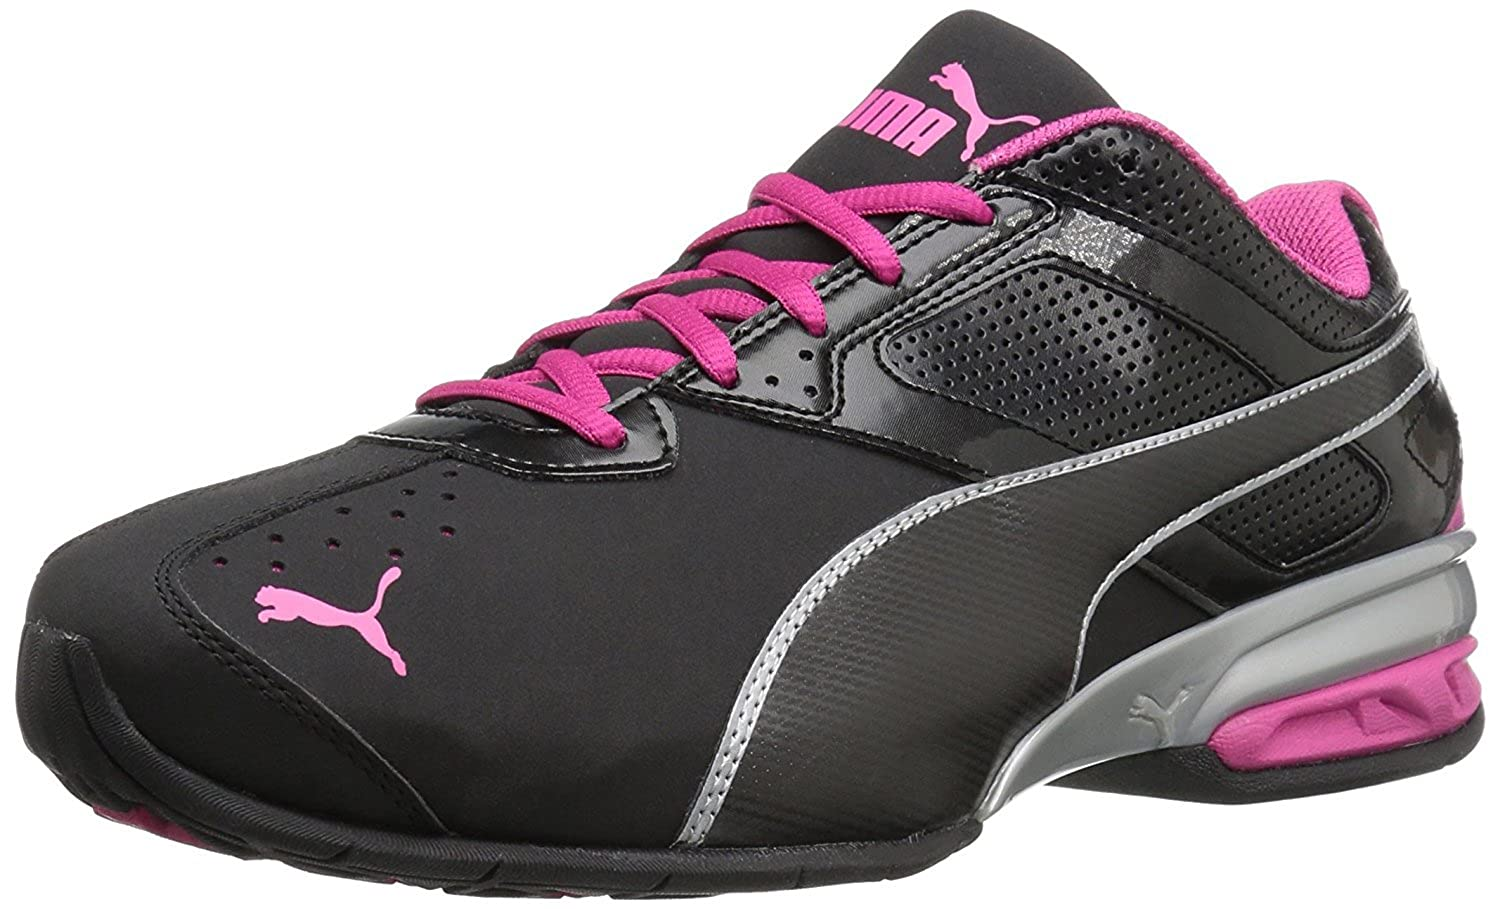 f6a7f53f815 PUMA Women s Tazon 6 Wn s FM Cross-Trainer Shoe